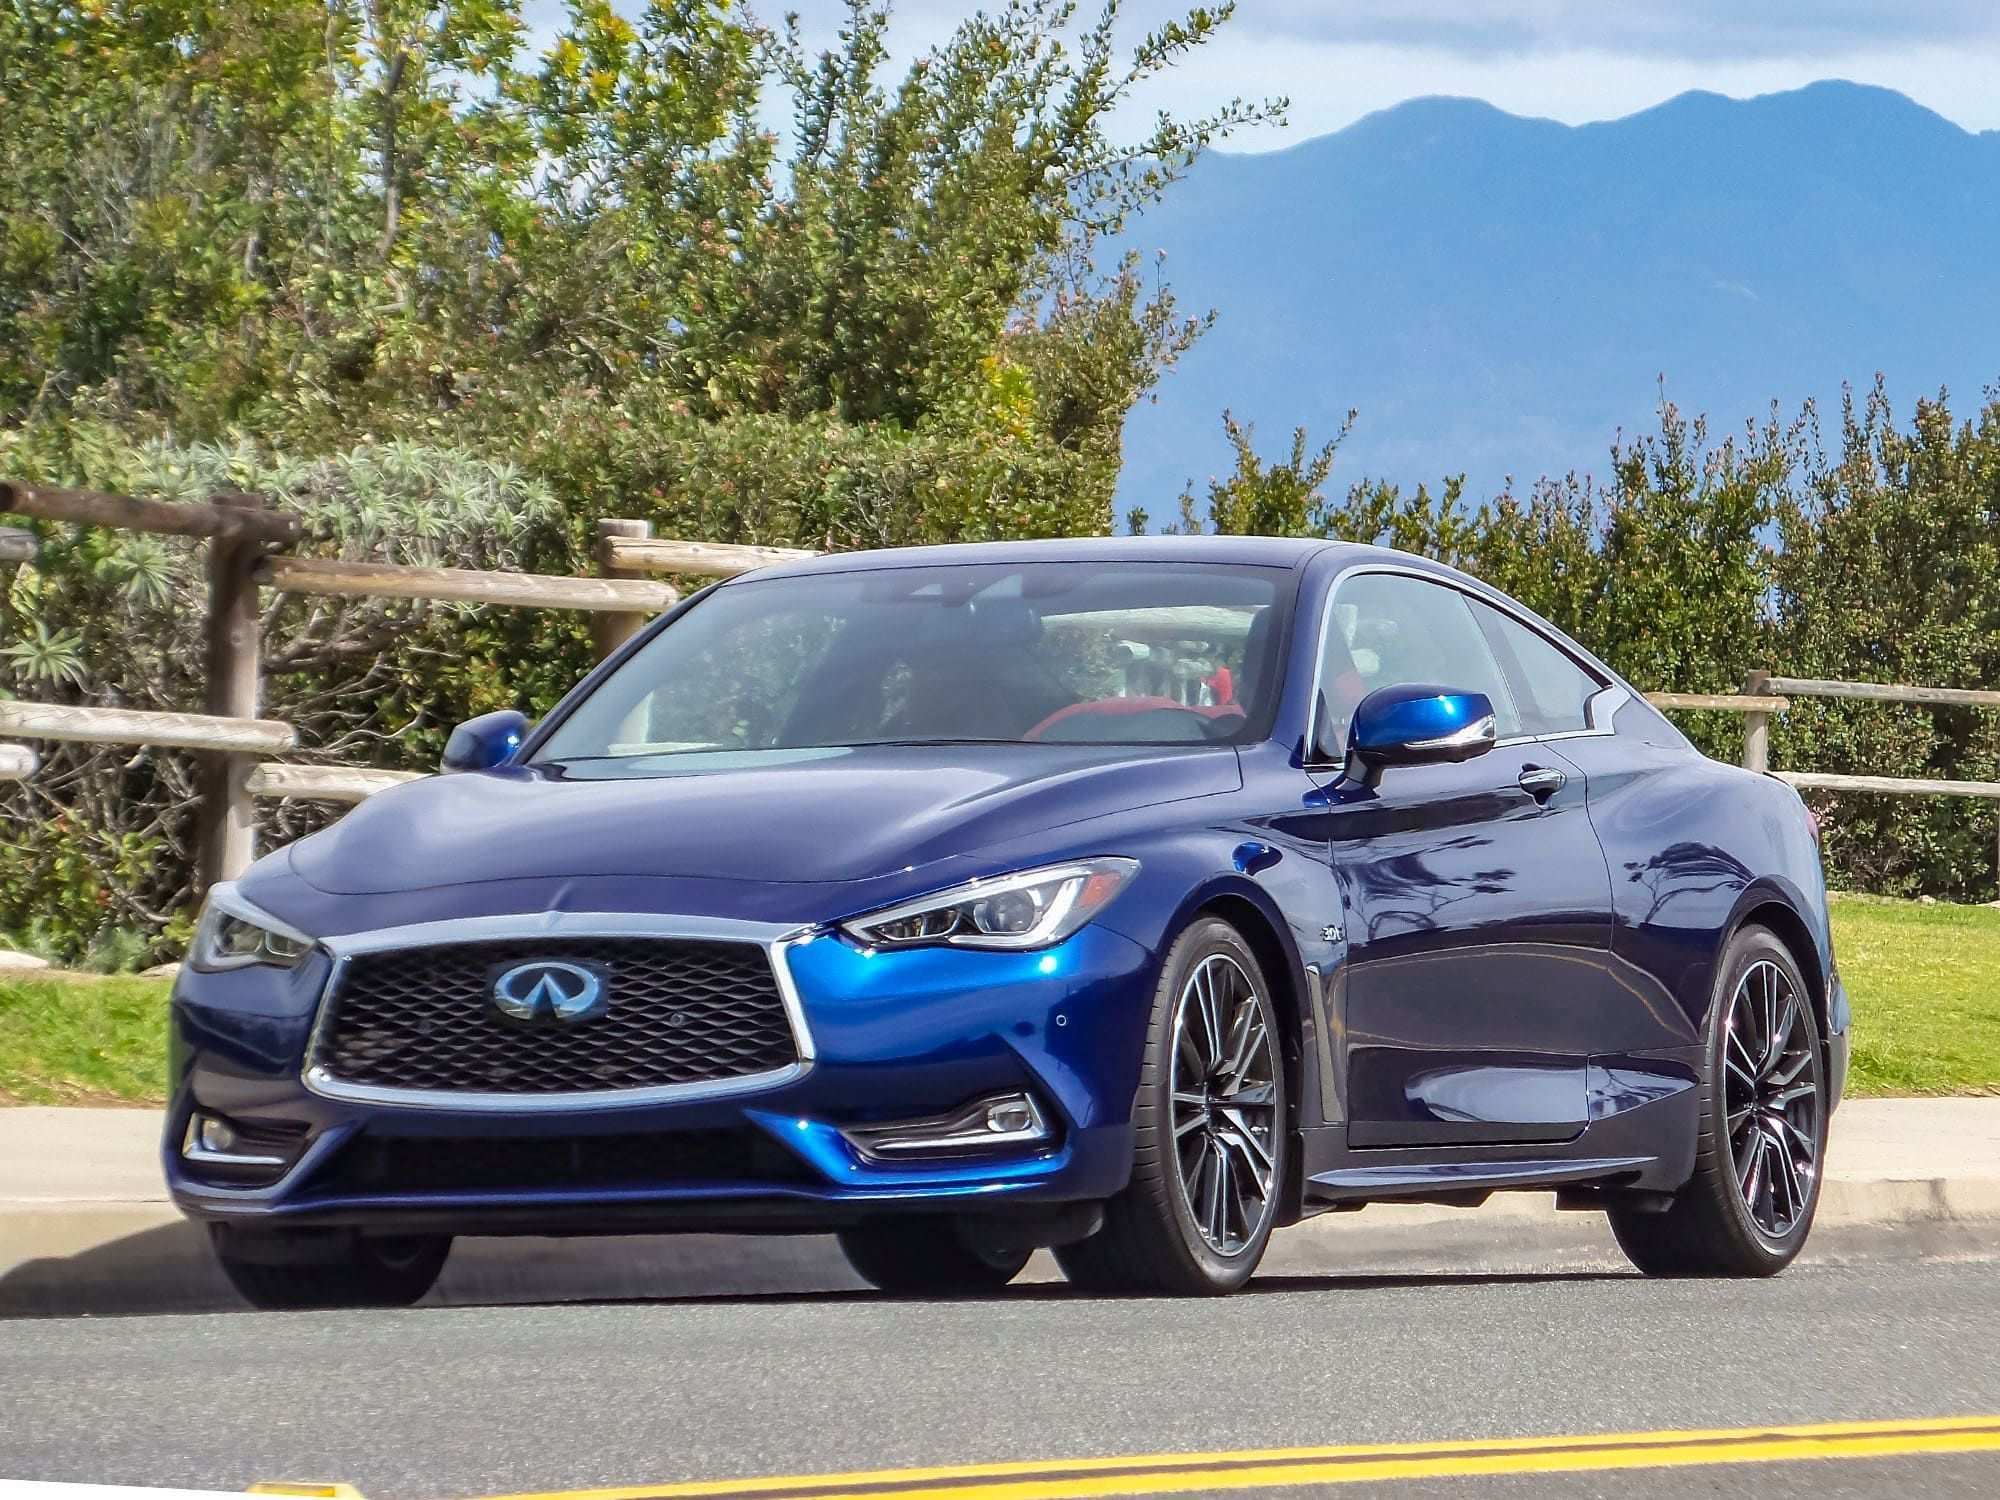 59 Great Infiniti Apple Carplay 2020 Specs and Review by Infiniti Apple Carplay 2020